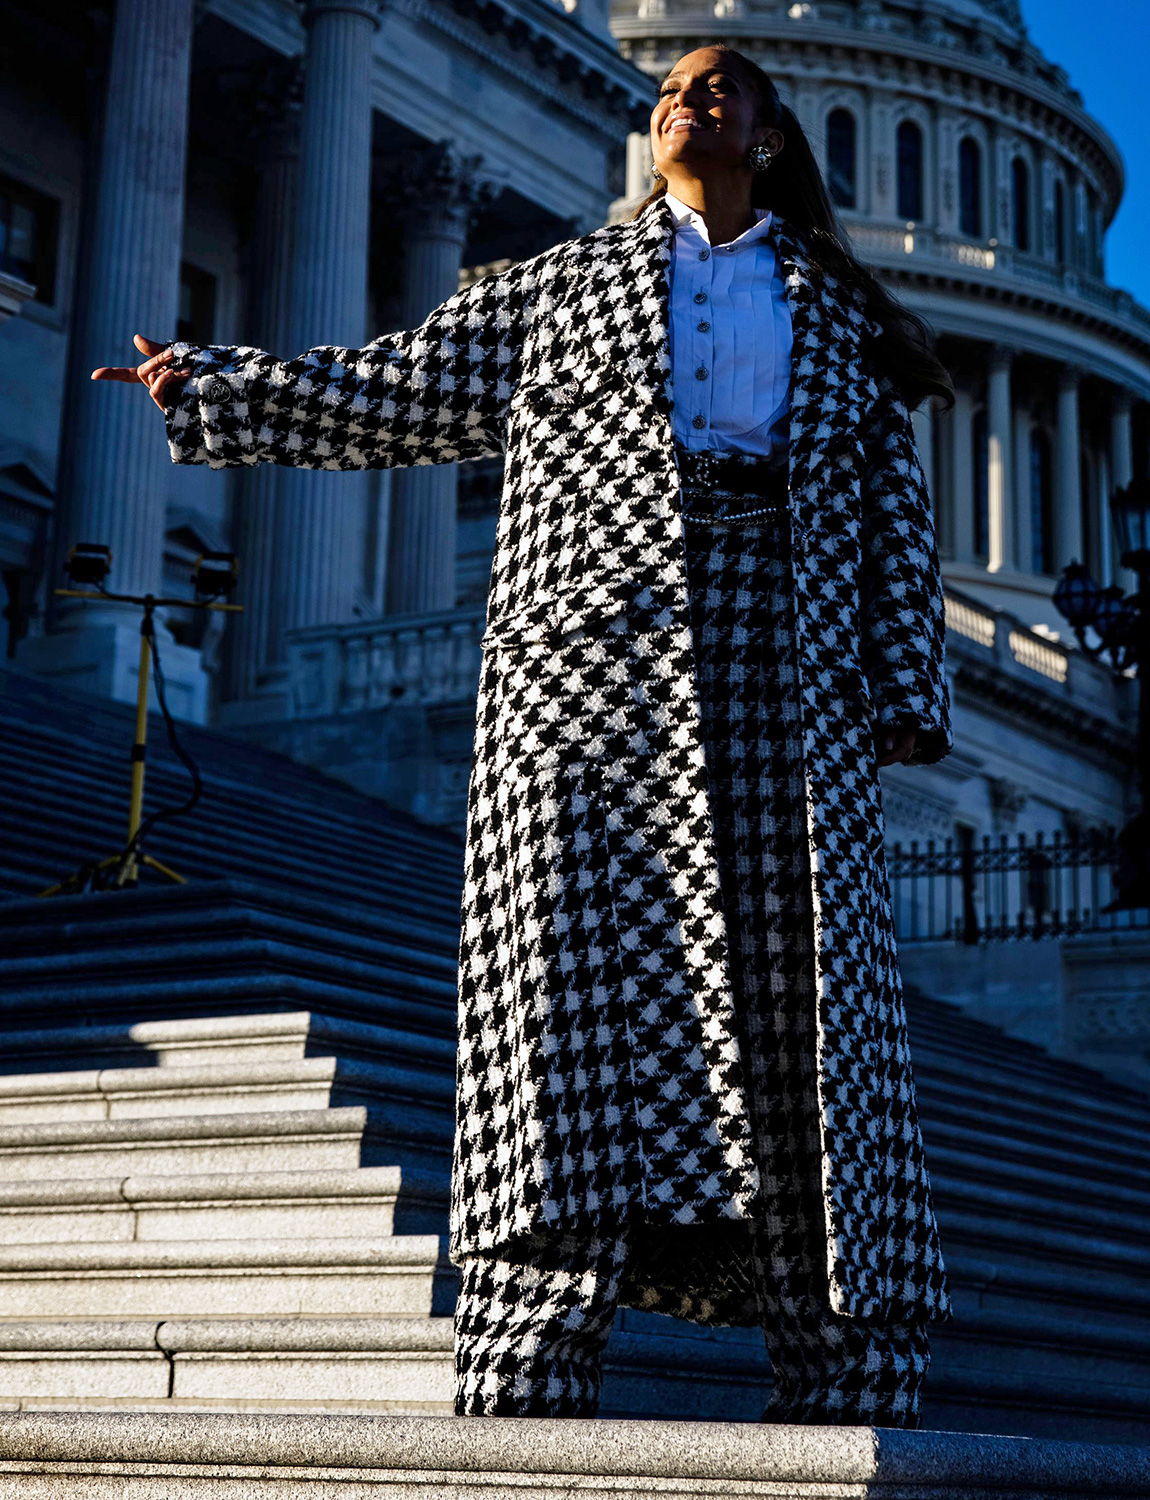 Singer and actress Jennifer Lopez poses on the steps to the House of Representatives with the US Capitol